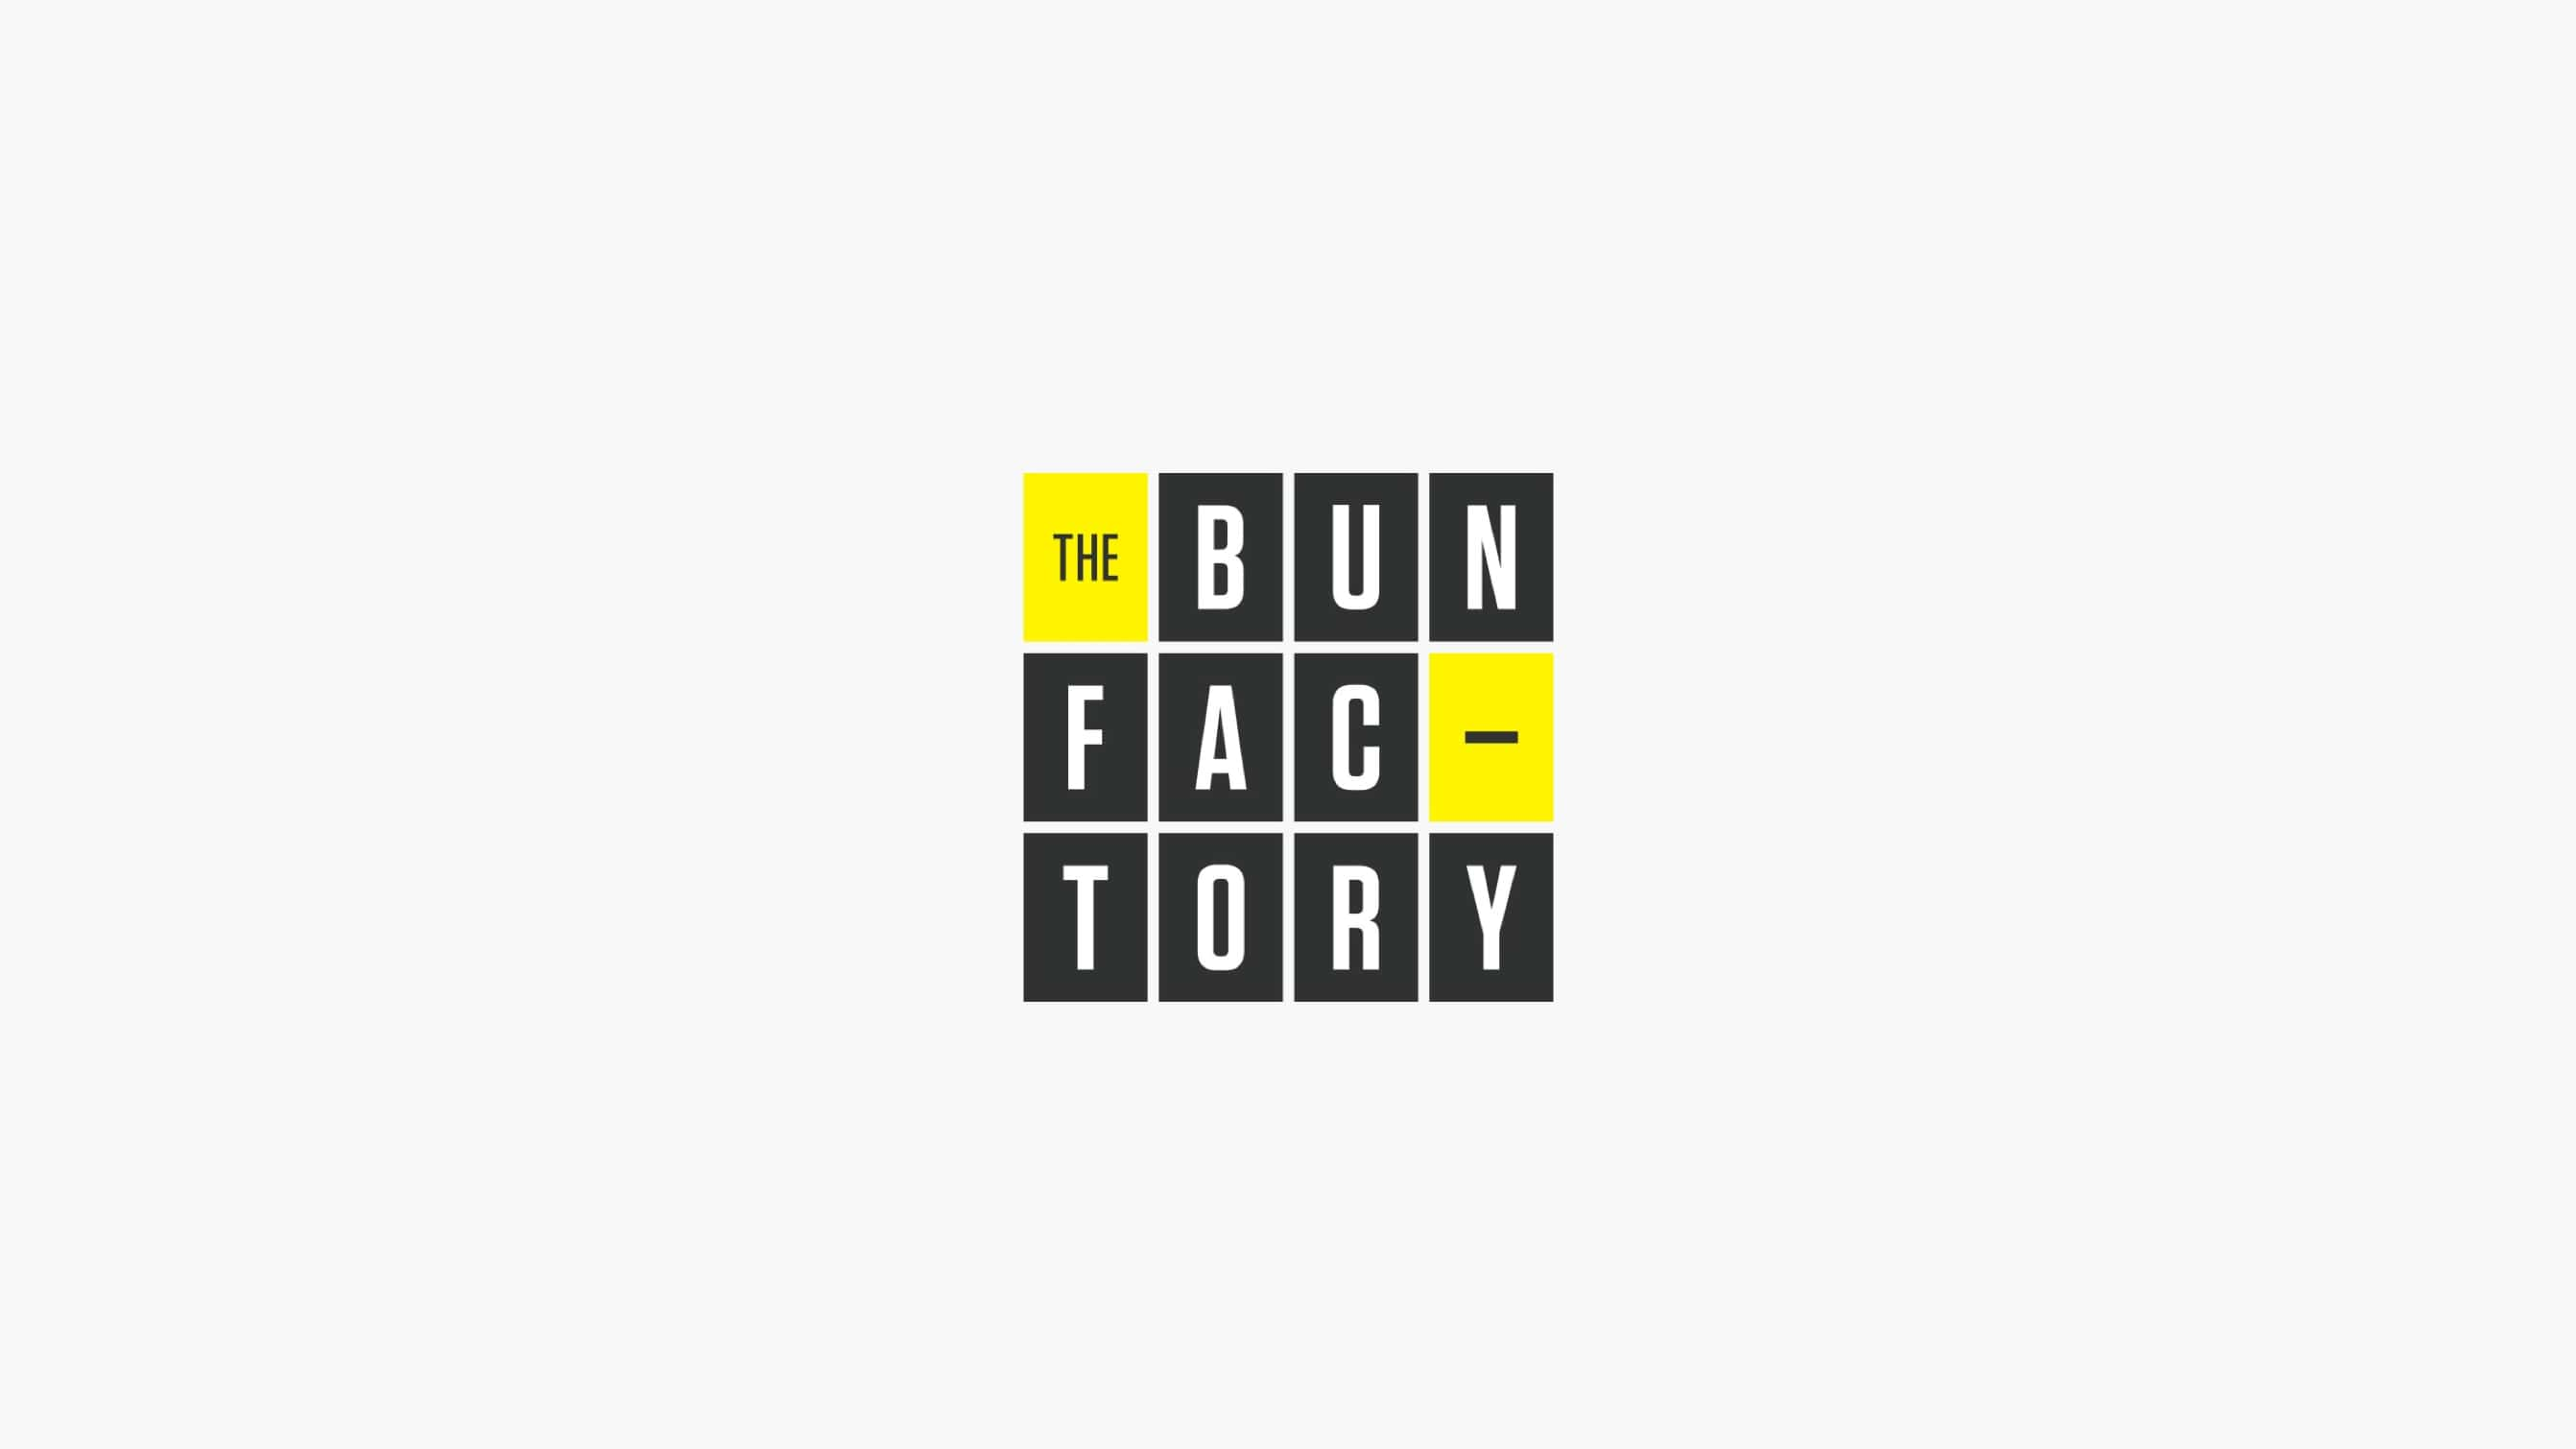 Food marketing & branding for The Bun Factory restaurant - Luther Dsgn agency